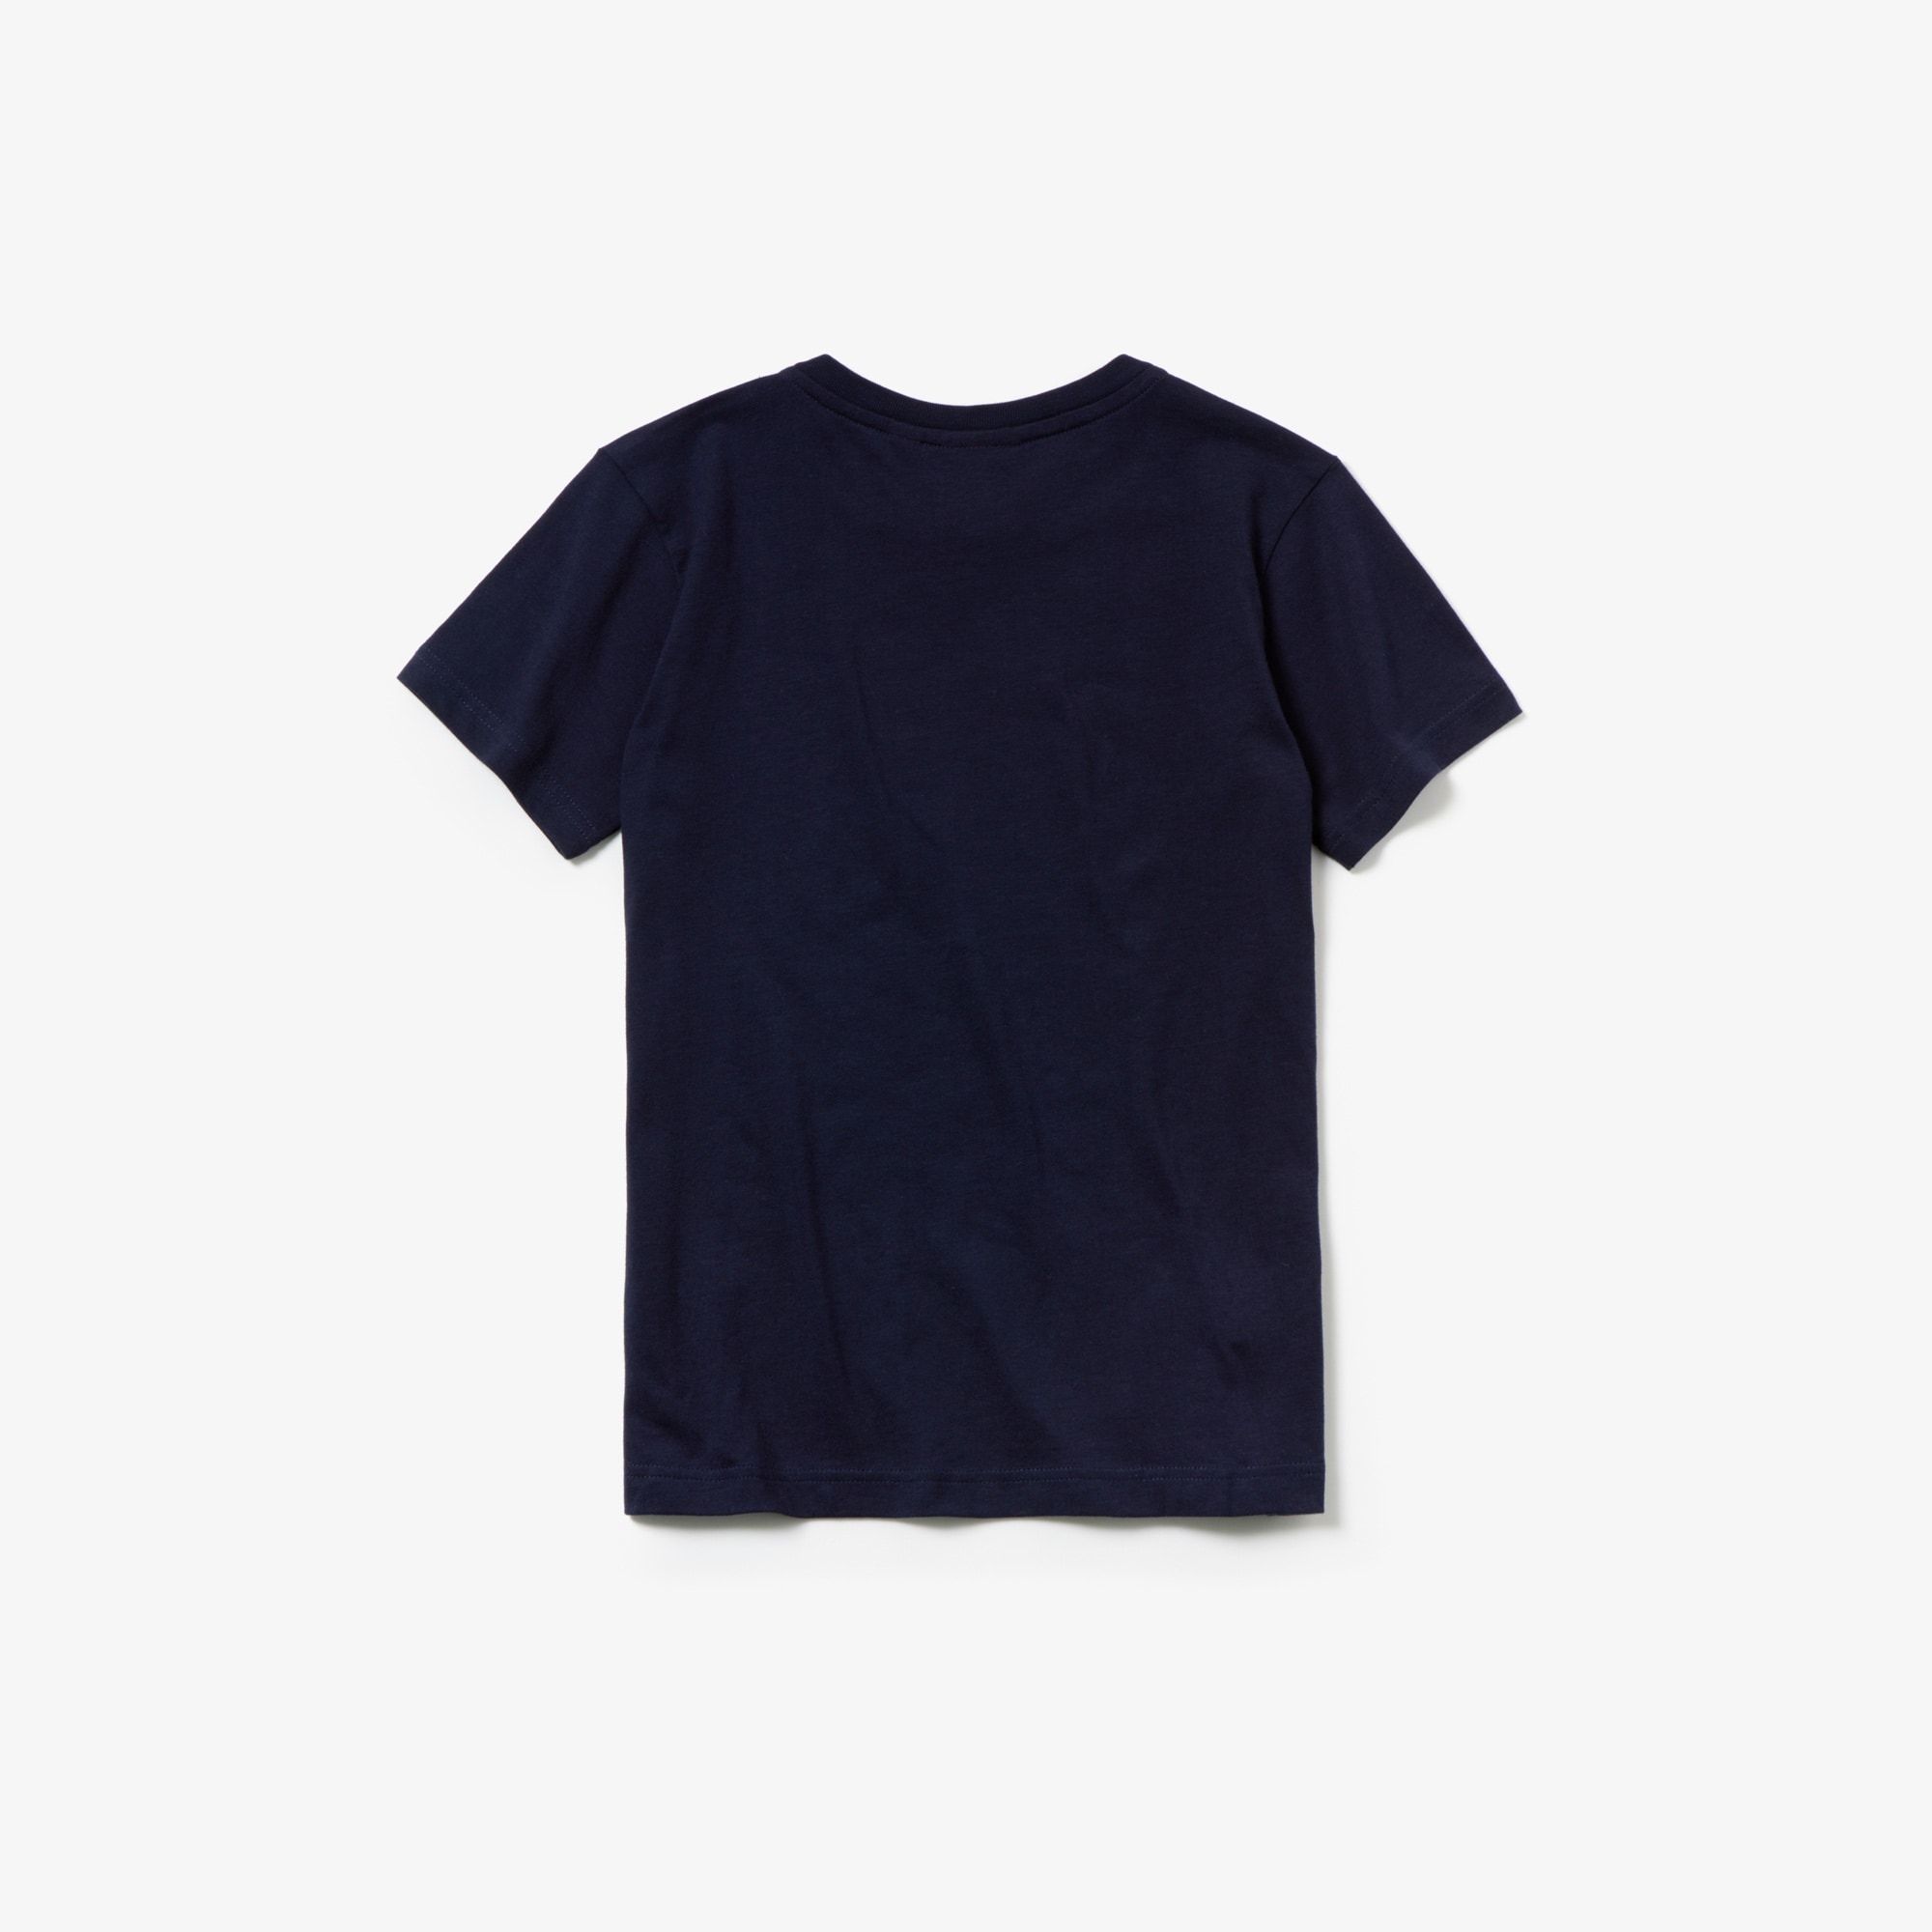 Boys' Lacoste SPORT French Open Edition Crew Neck Cotton T-shirt